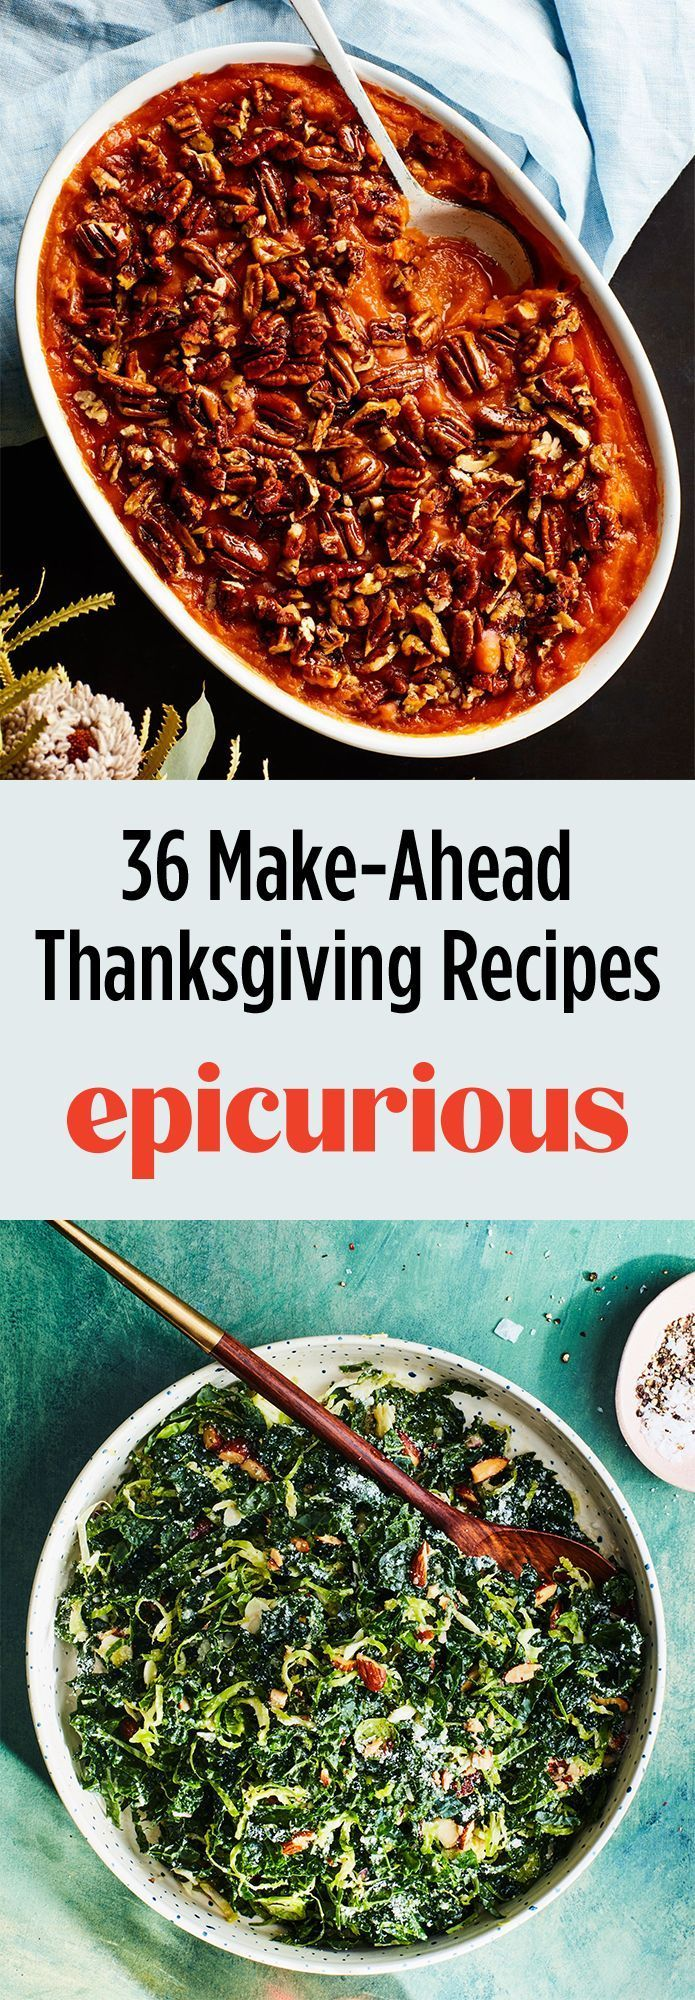 49 MakeAhead Thanksgiving Recipes for a StressFree